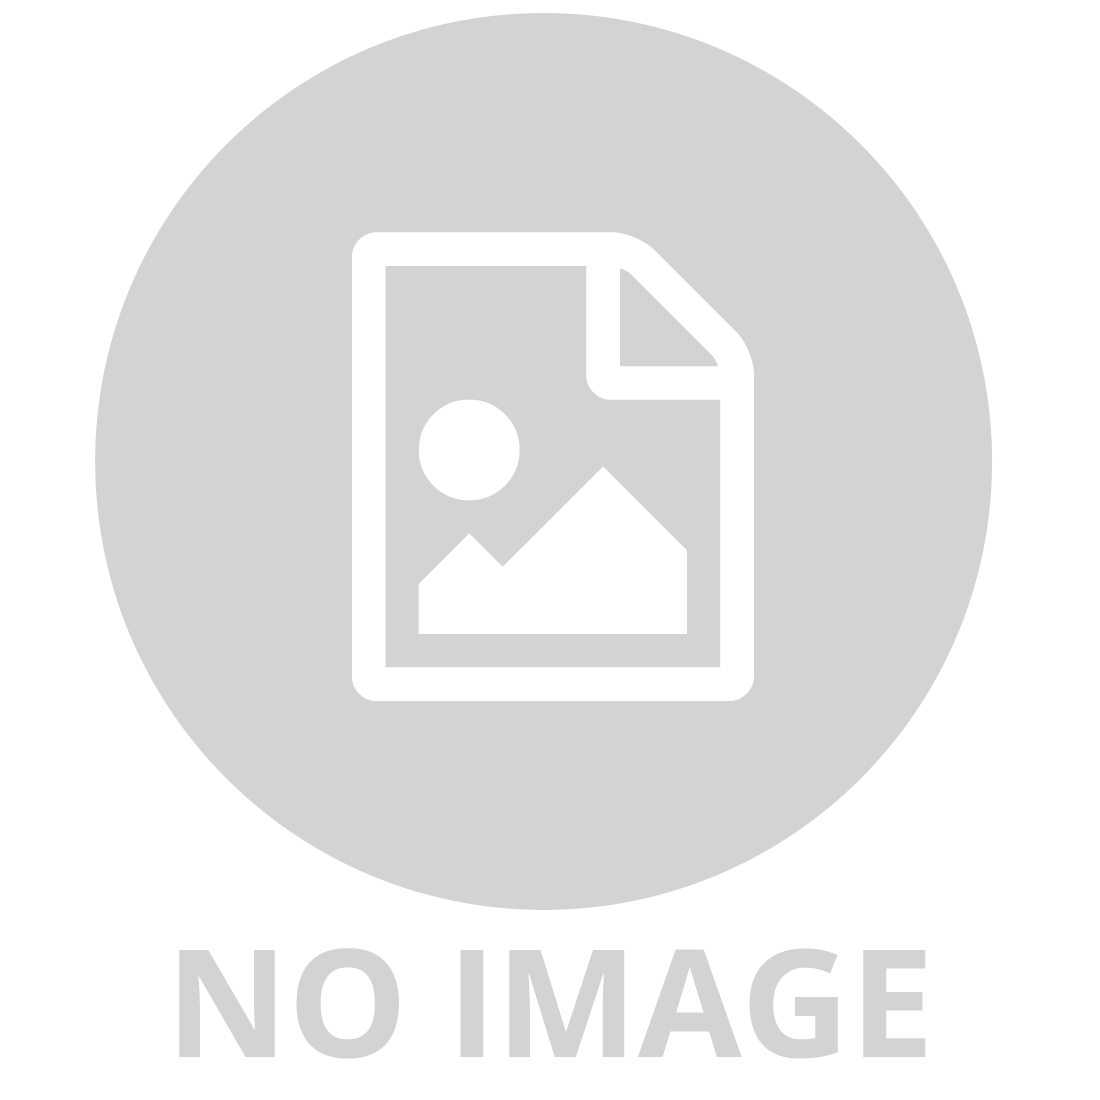 Pixie Smart Switch (Bluetooth) SWL350BT 350W